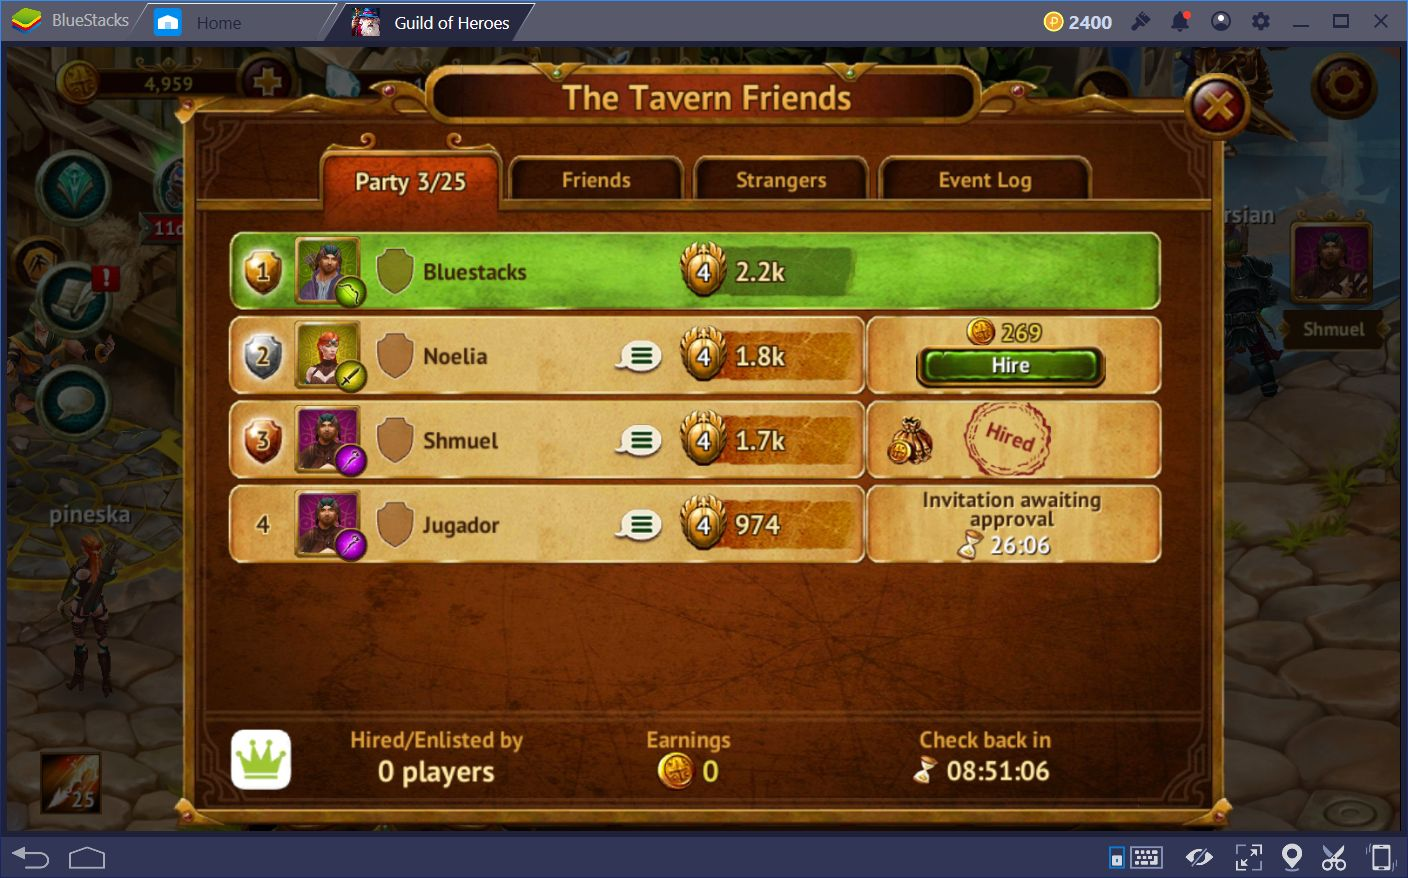 How to Use the Tavern in Guild of Heroes